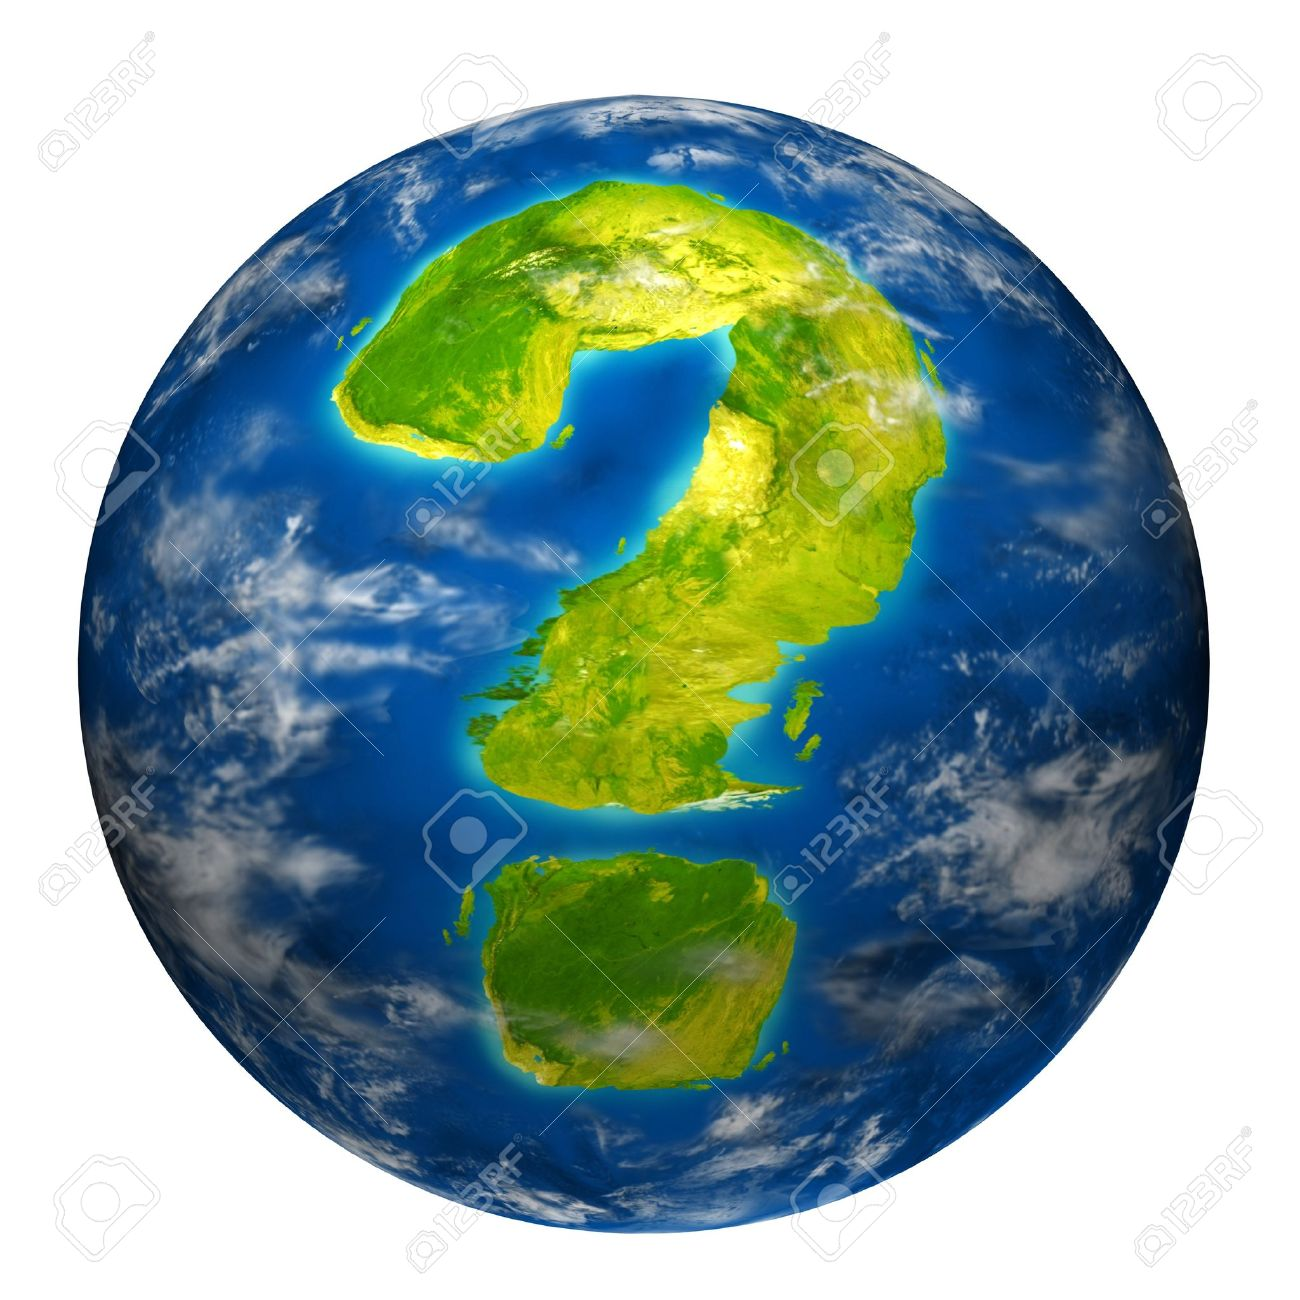 Earth question symbol represented by a world globe model with a geographic shape of a mark questioning the state of the environment the international economy and political situation. Stock Photo - 10909946